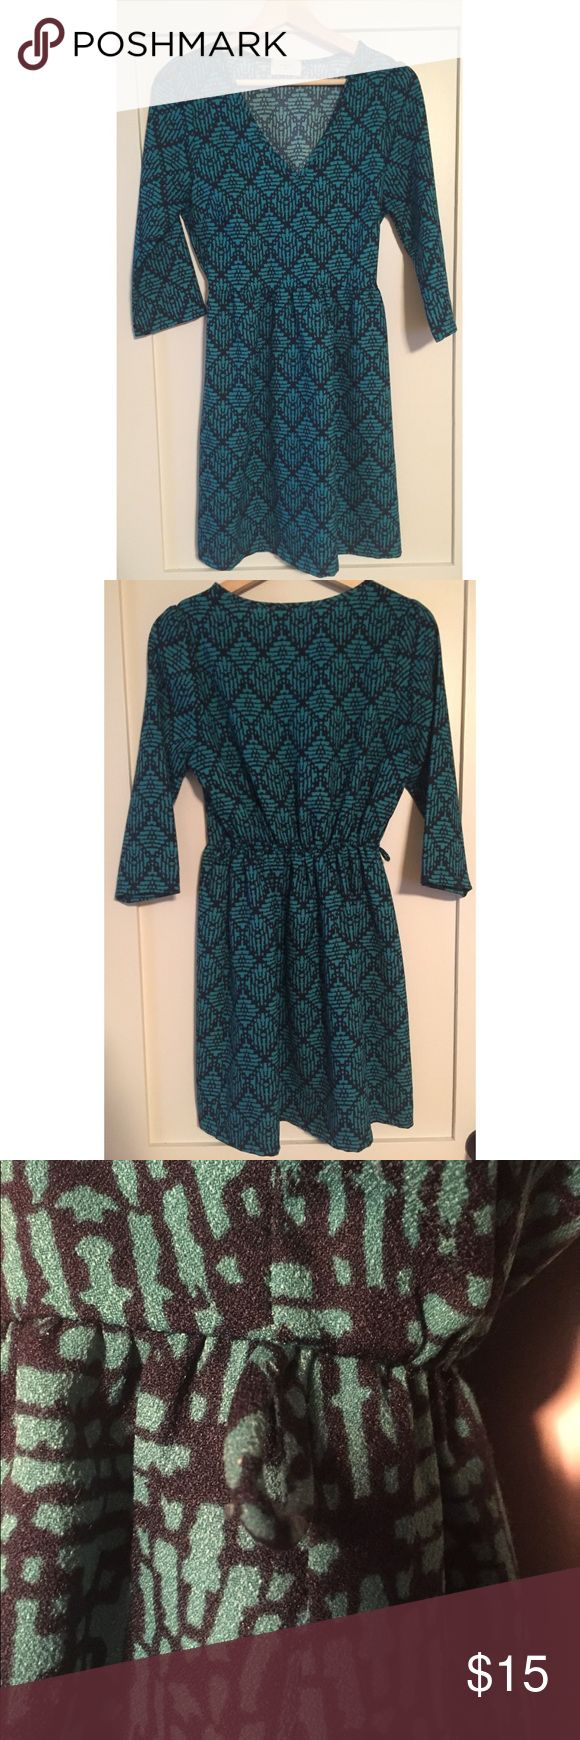 Everly Dress - Size Medium Everly Dress - Size Medium - Dress has belt loops but no belt is included. Everly Dresses Midi